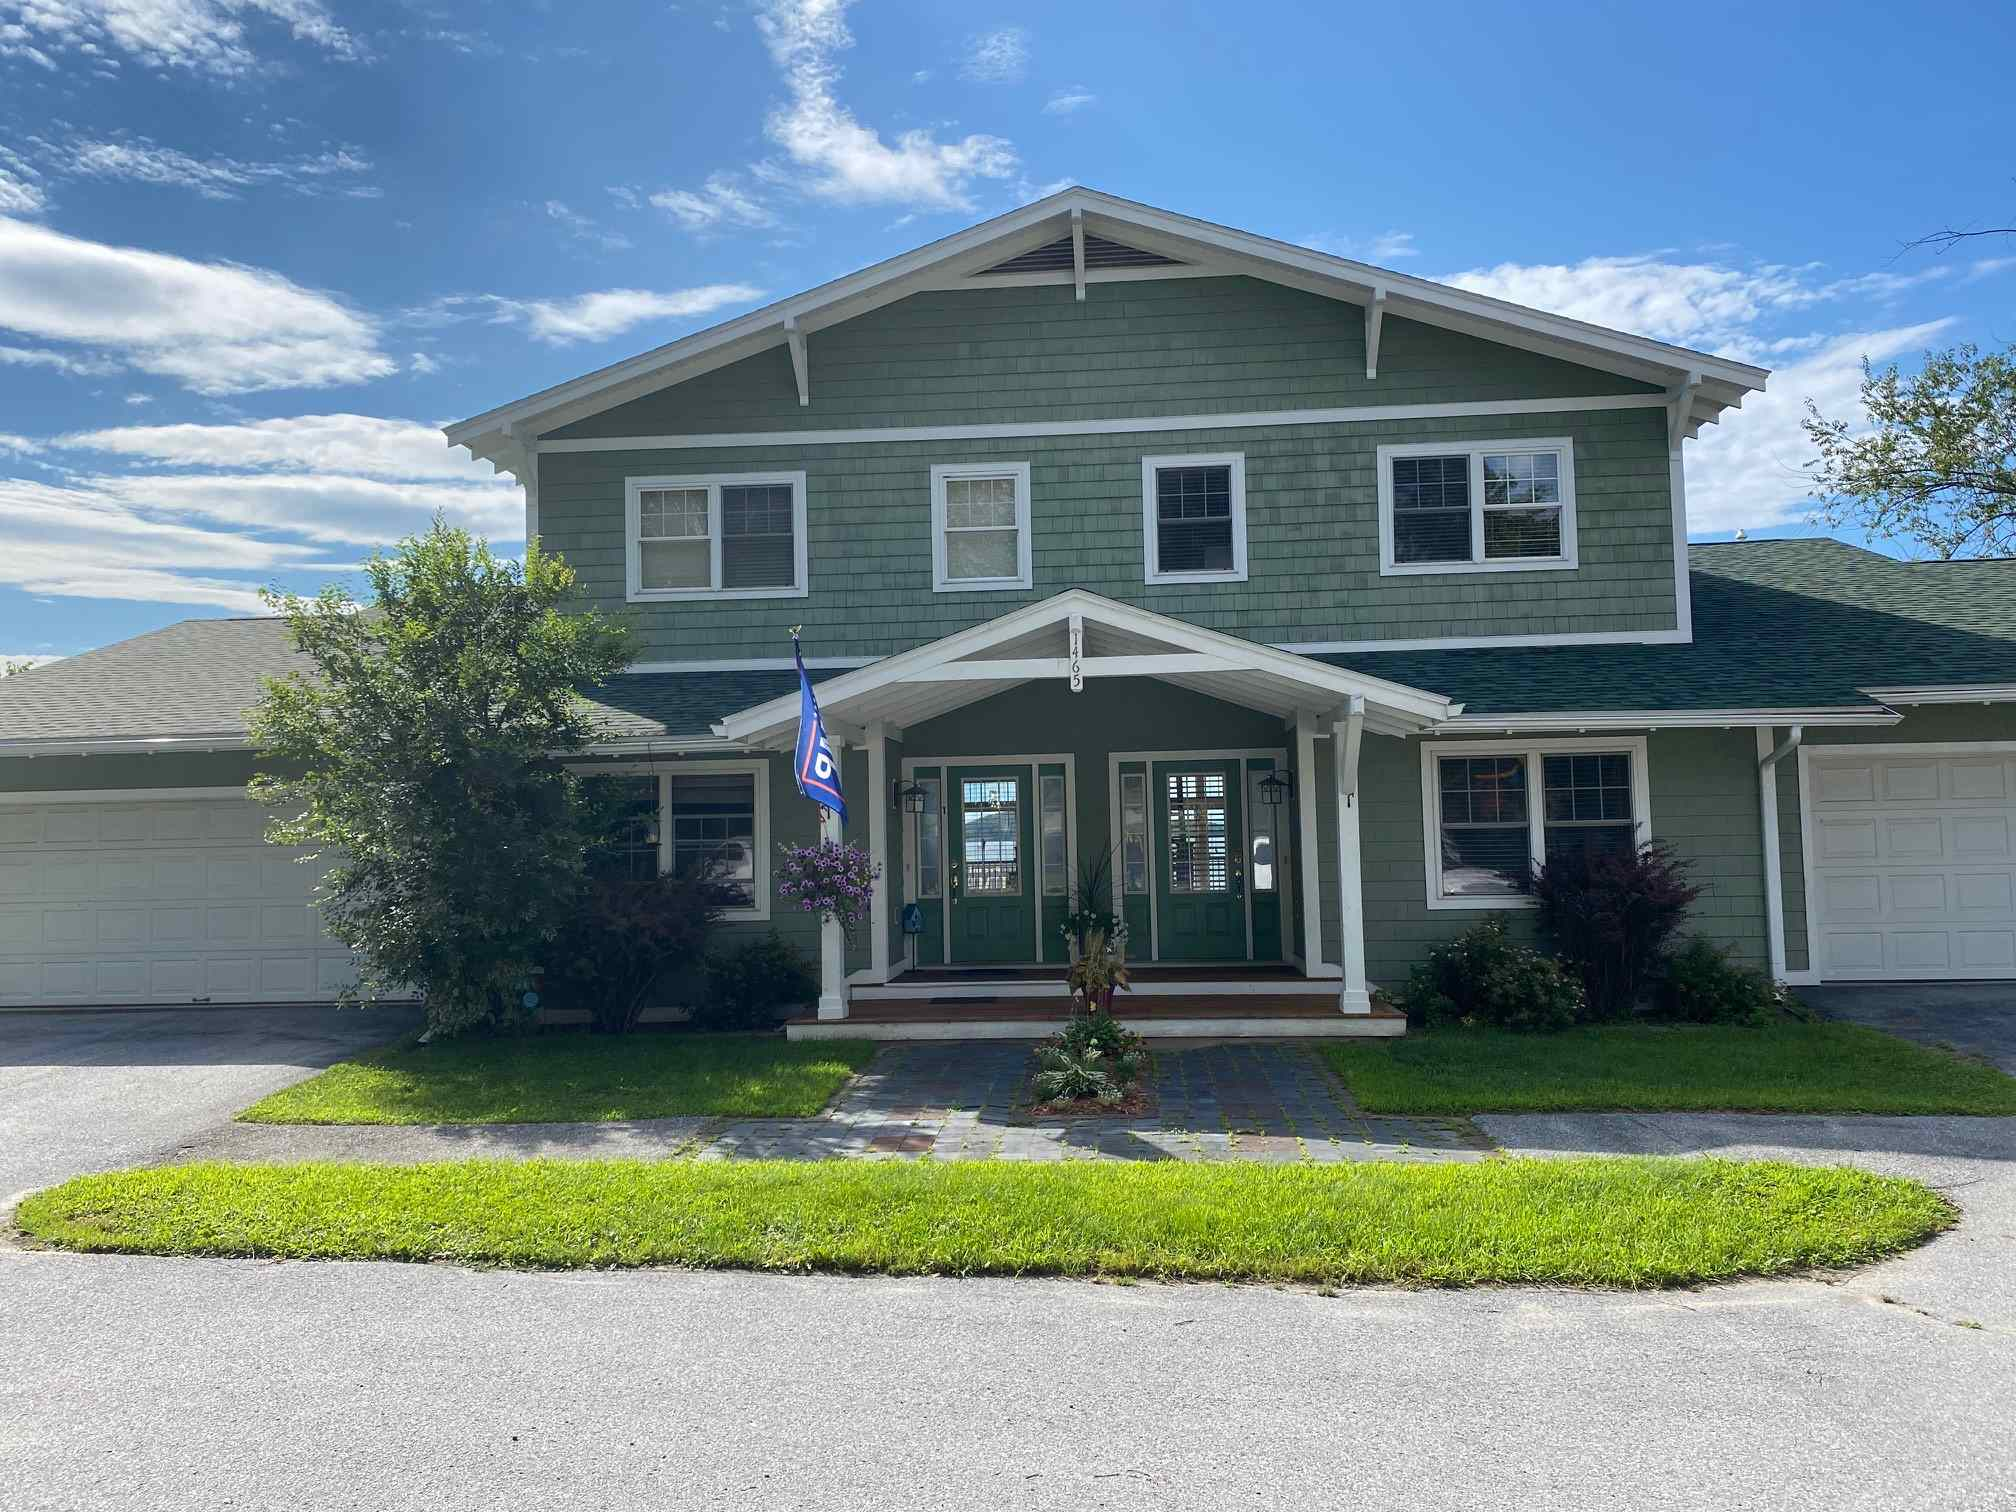 Photo of 1465 East Lakeshore Drive Colchester VT 05446